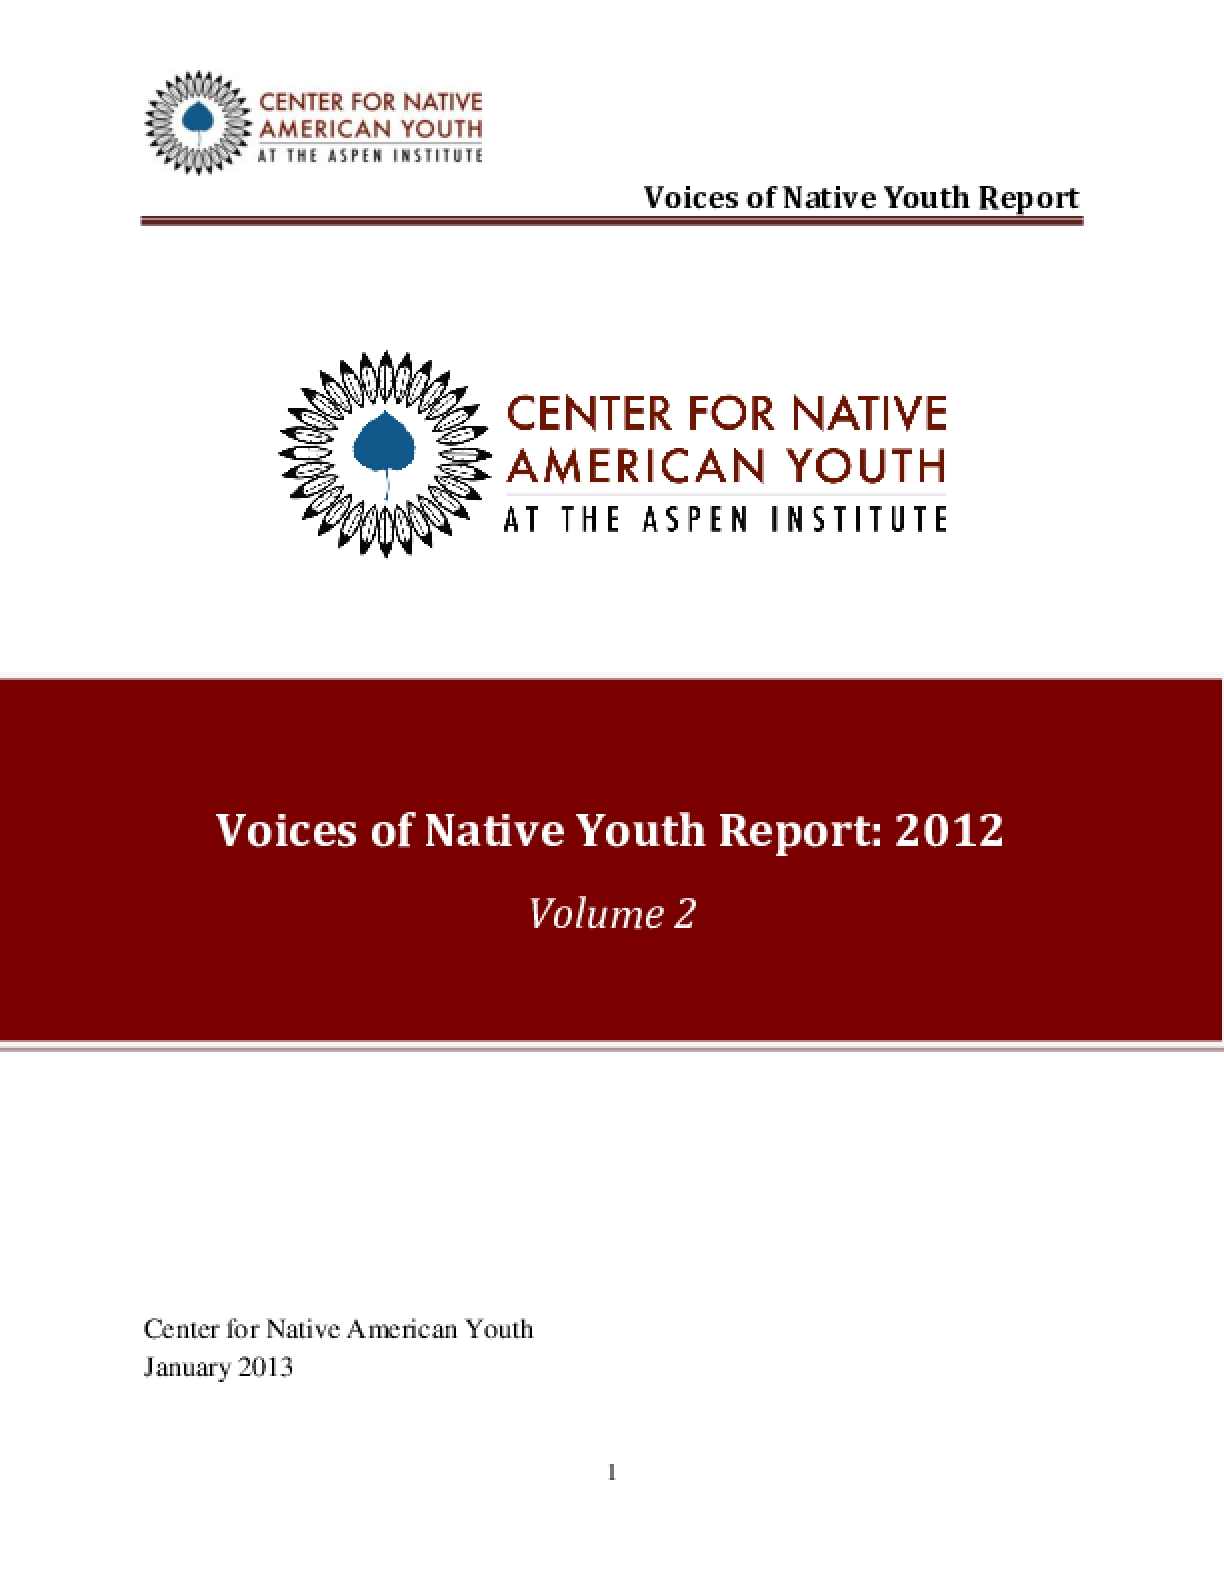 Voices of Native Youth Report Volume 2